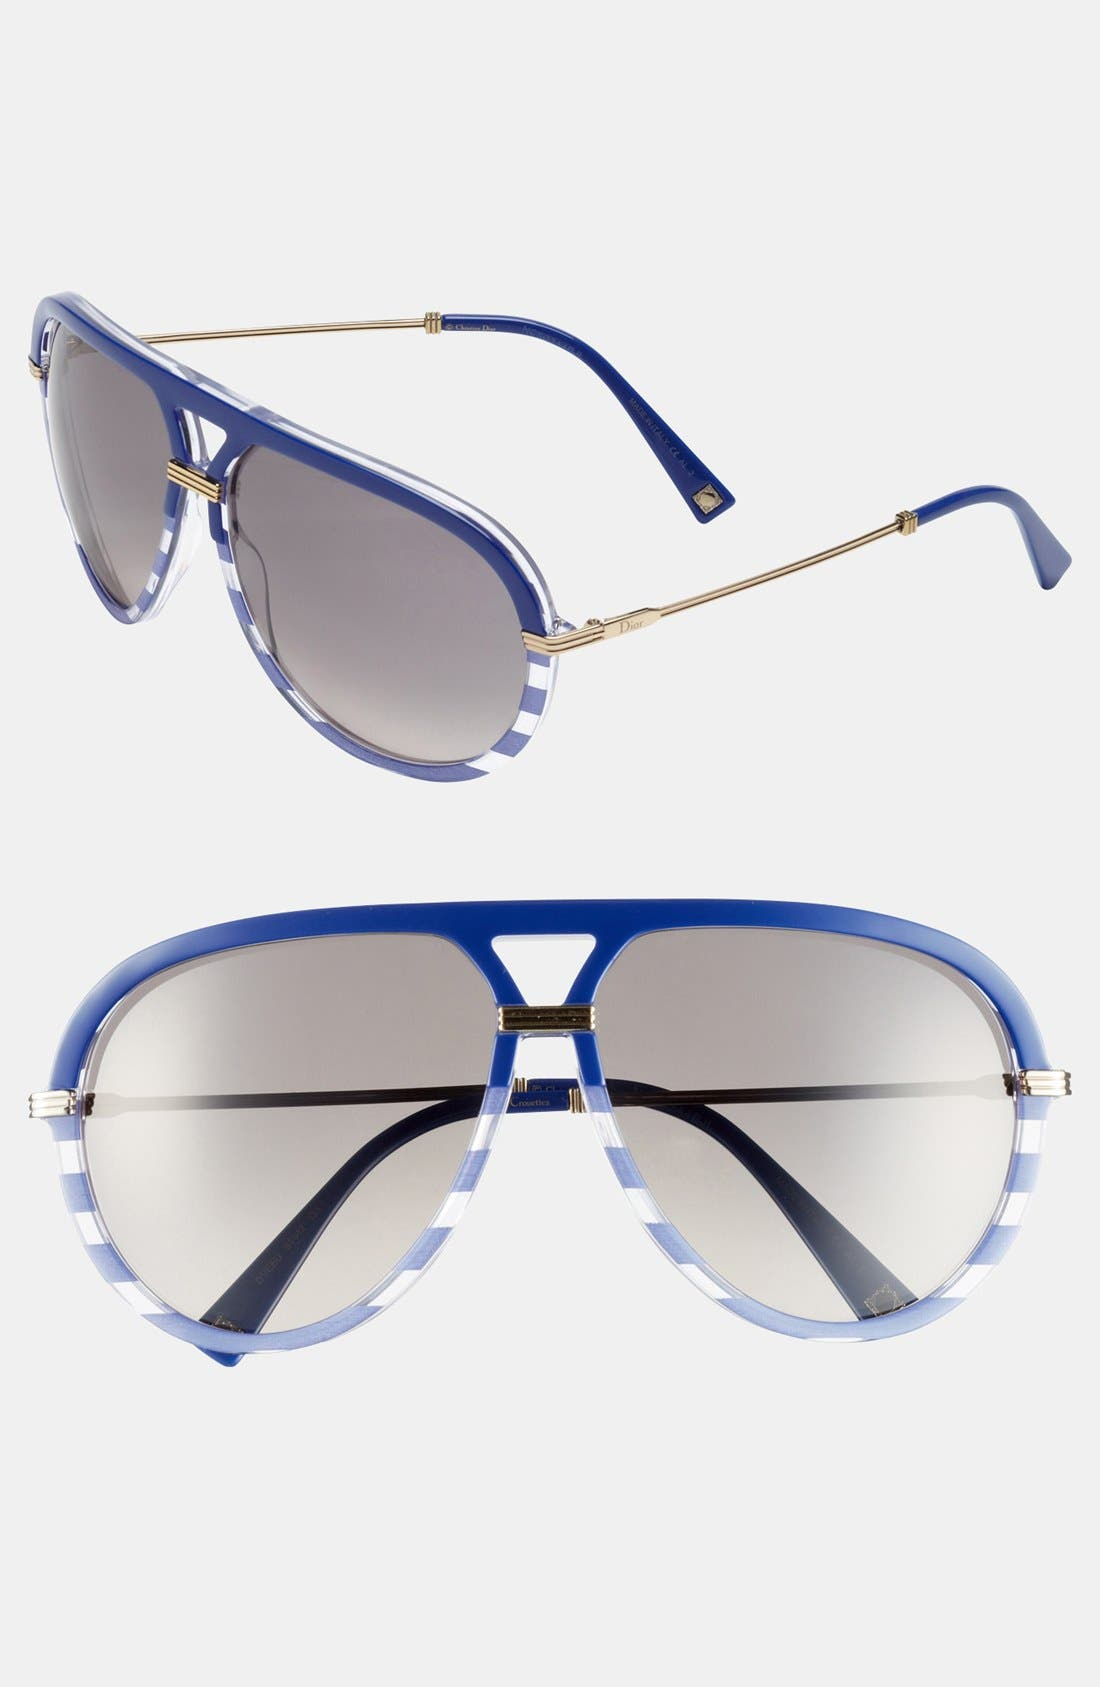 Alternate Image 1 Selected - Dior 'Croisette 2' Aviator Sunglasses